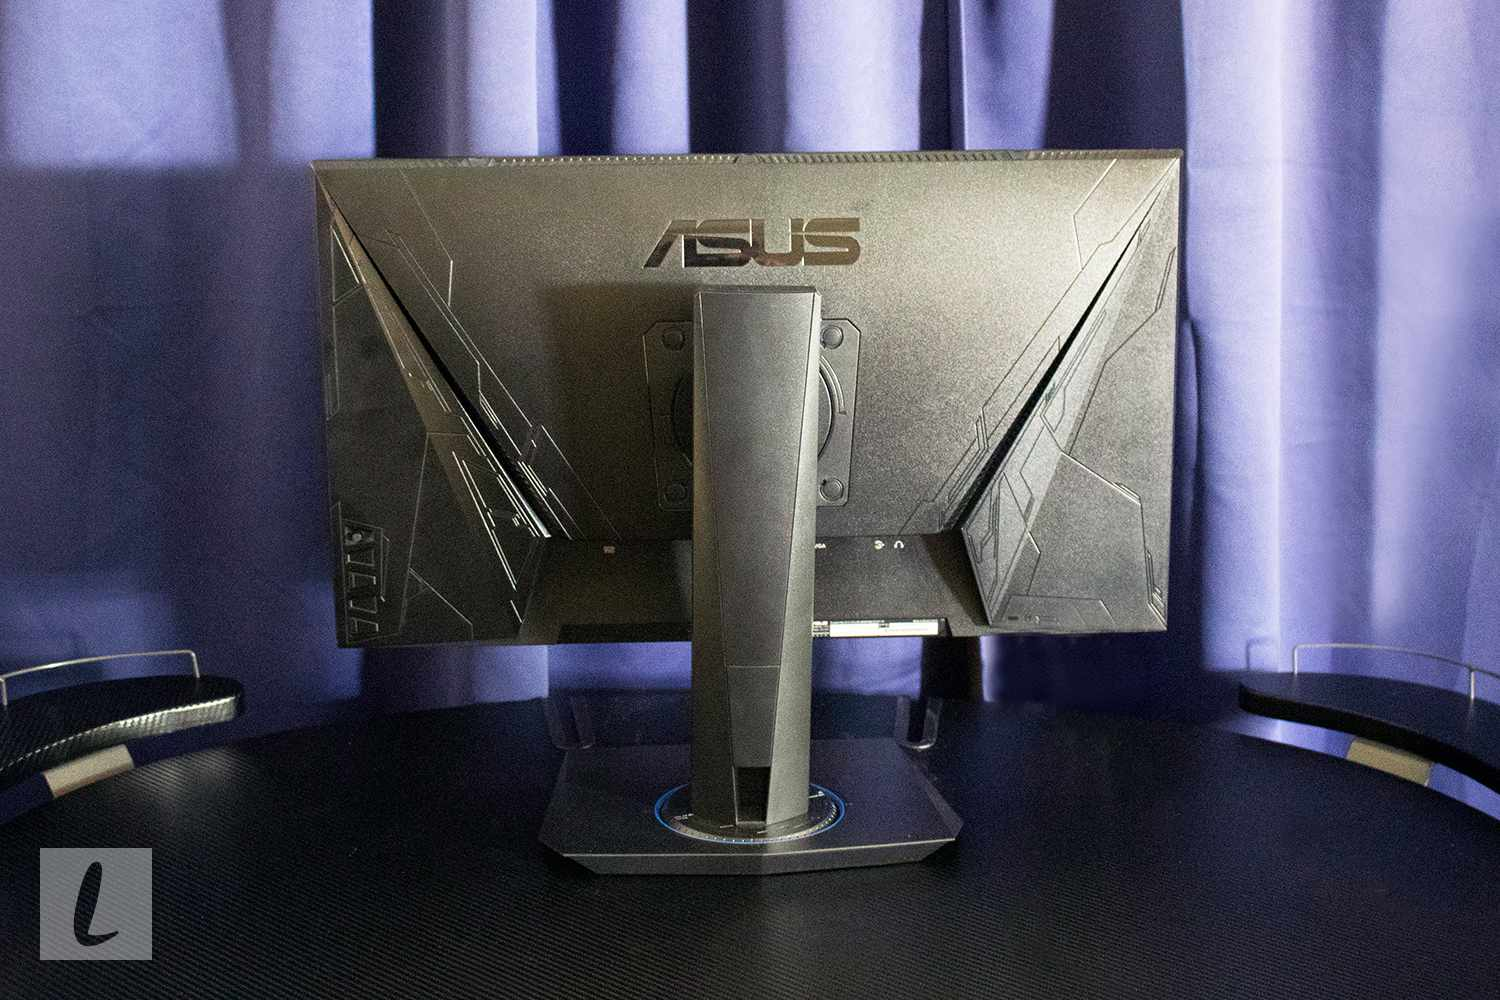 Asus VG245H 24-Inch Monitor